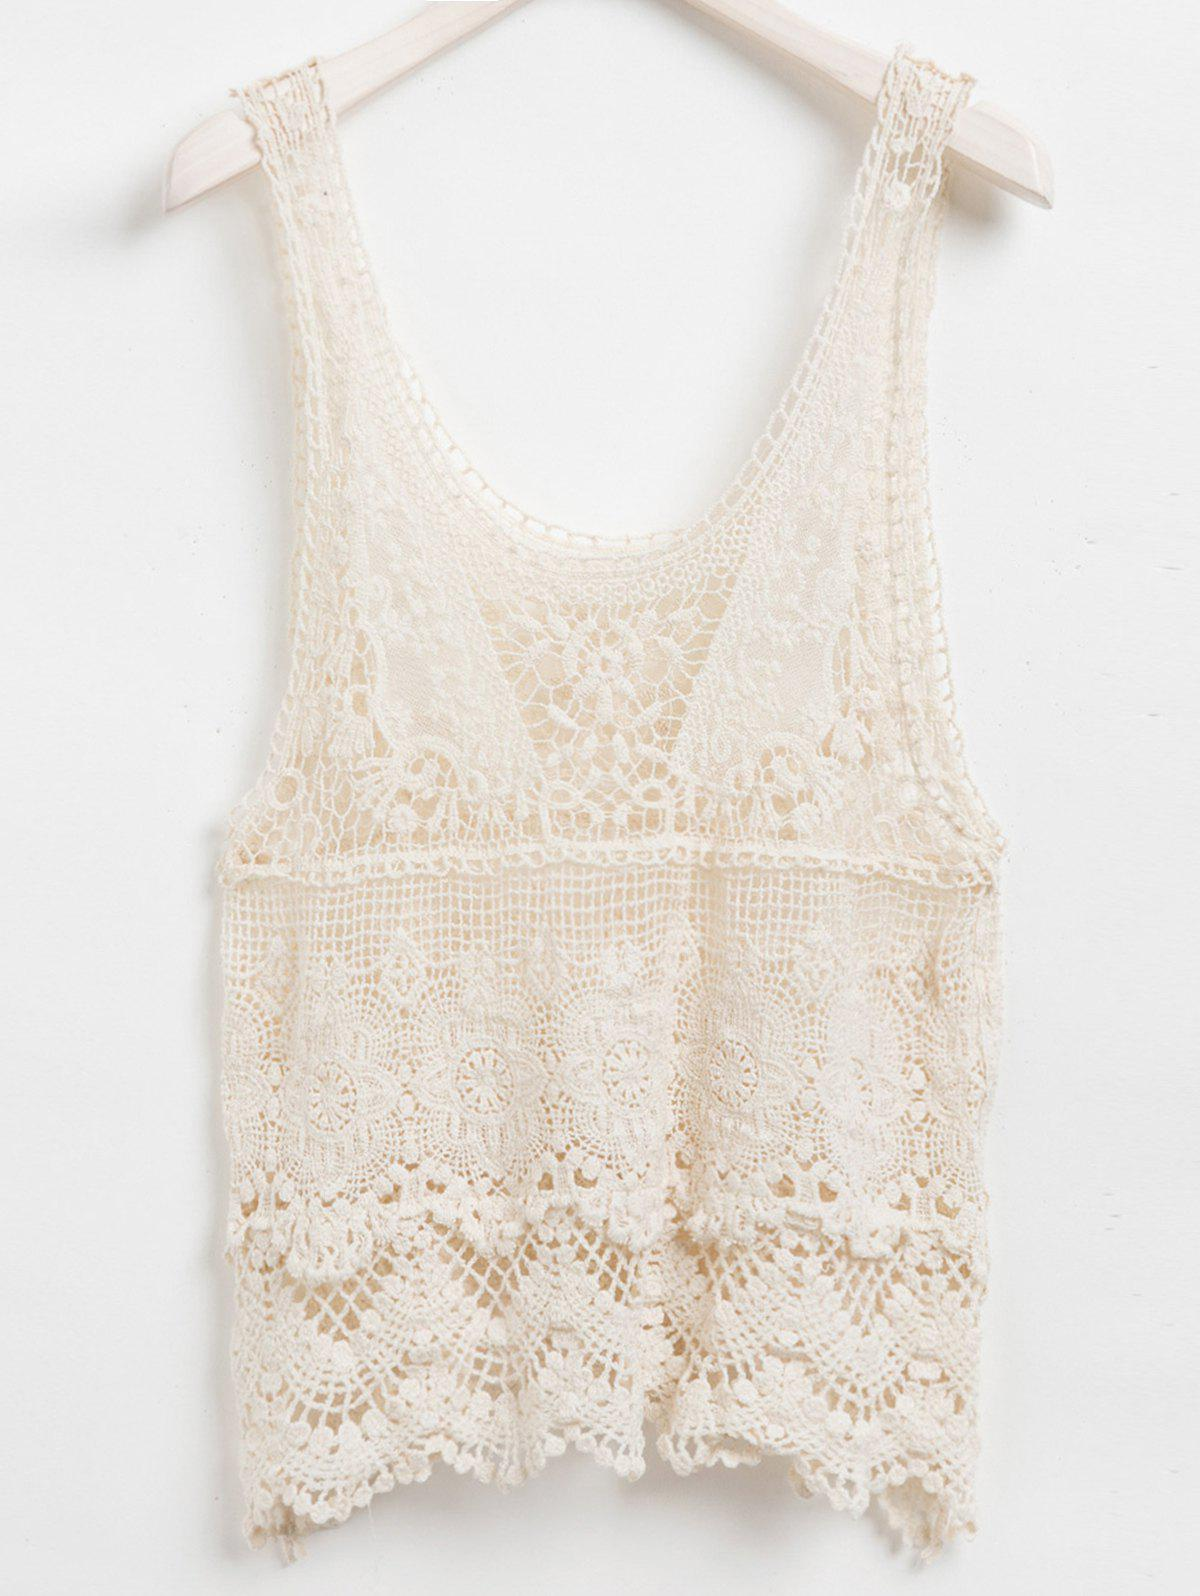 Crochet Embellished Sleeveless Scoop Neck Solid Color Hollow Out Design Lace Tank Top